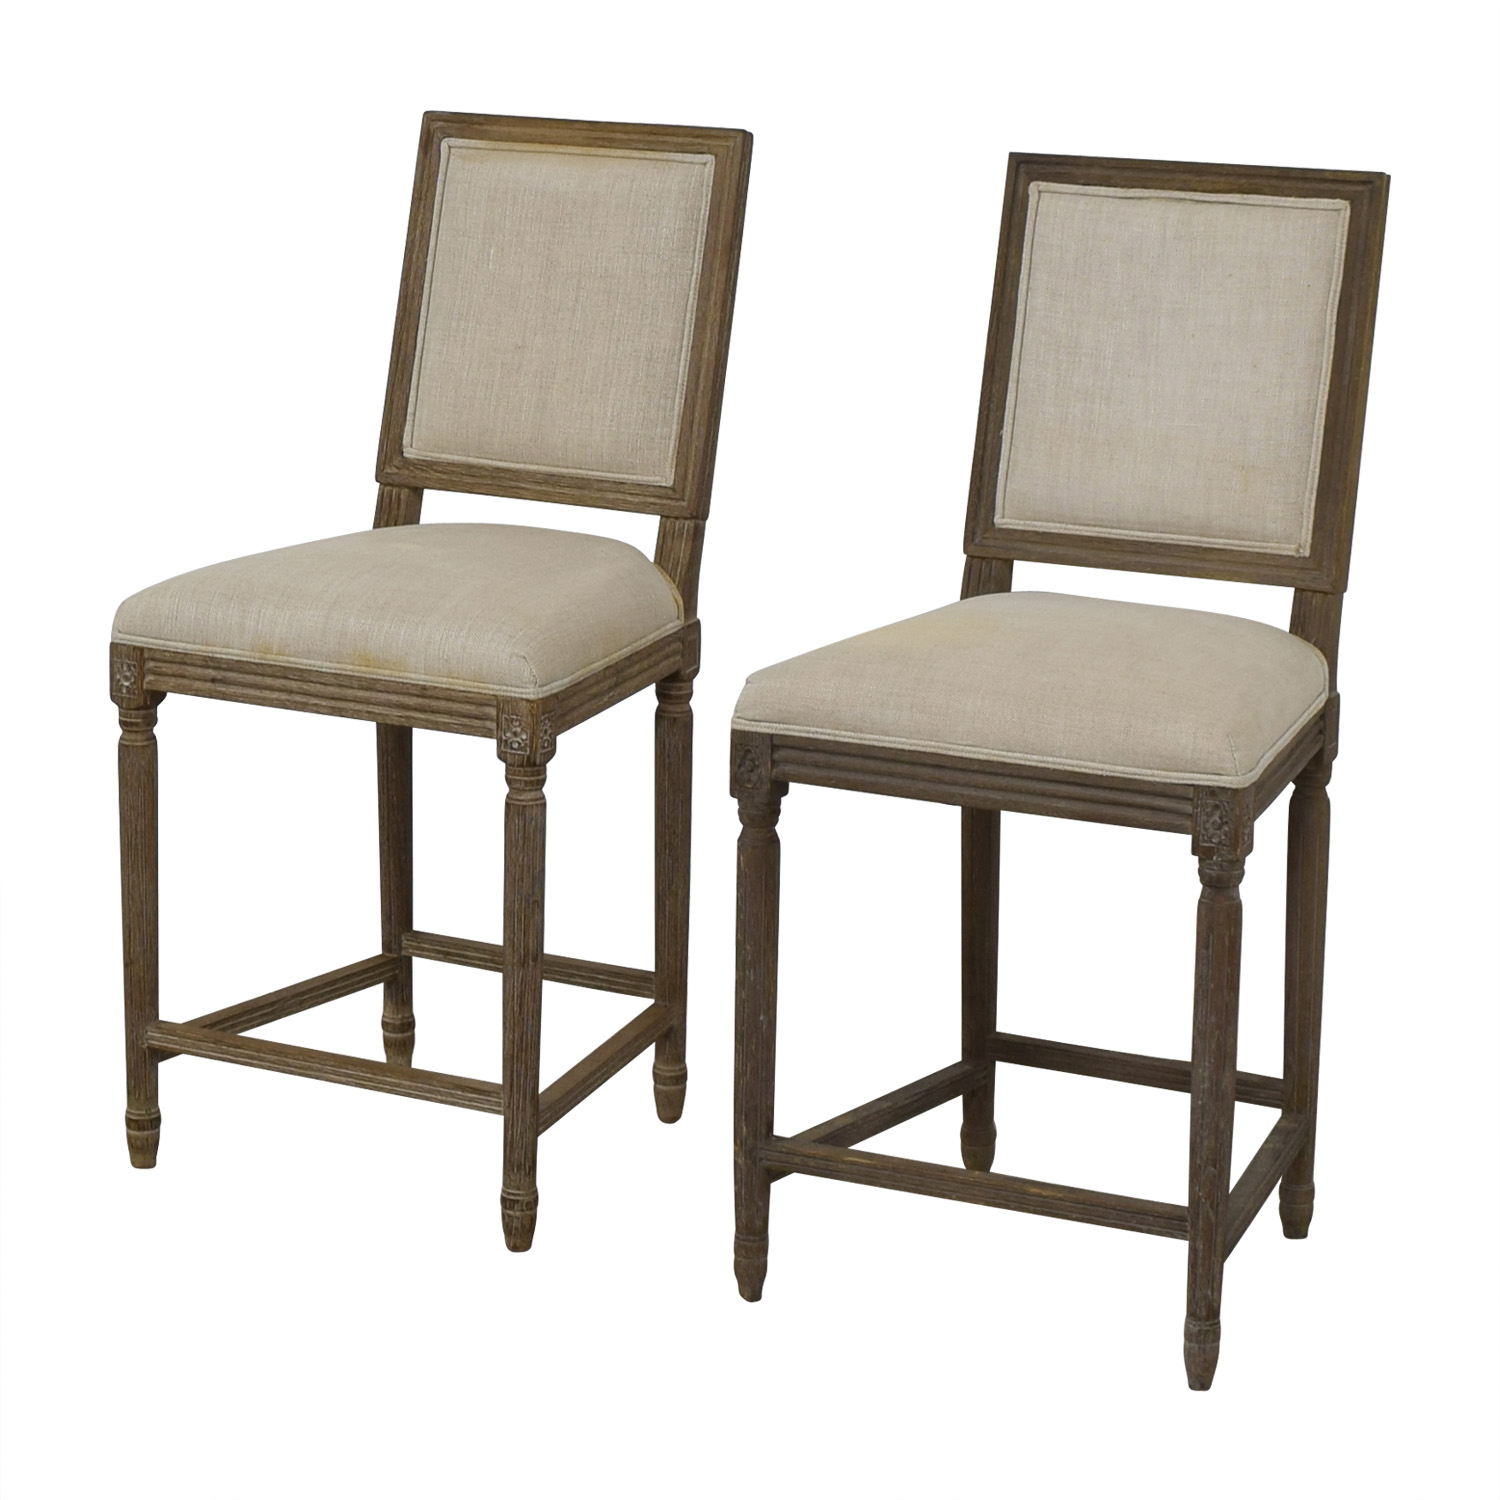 Restoration Hardware Restoration Hardware Vintage French Square Counter Stools Dining Chairs